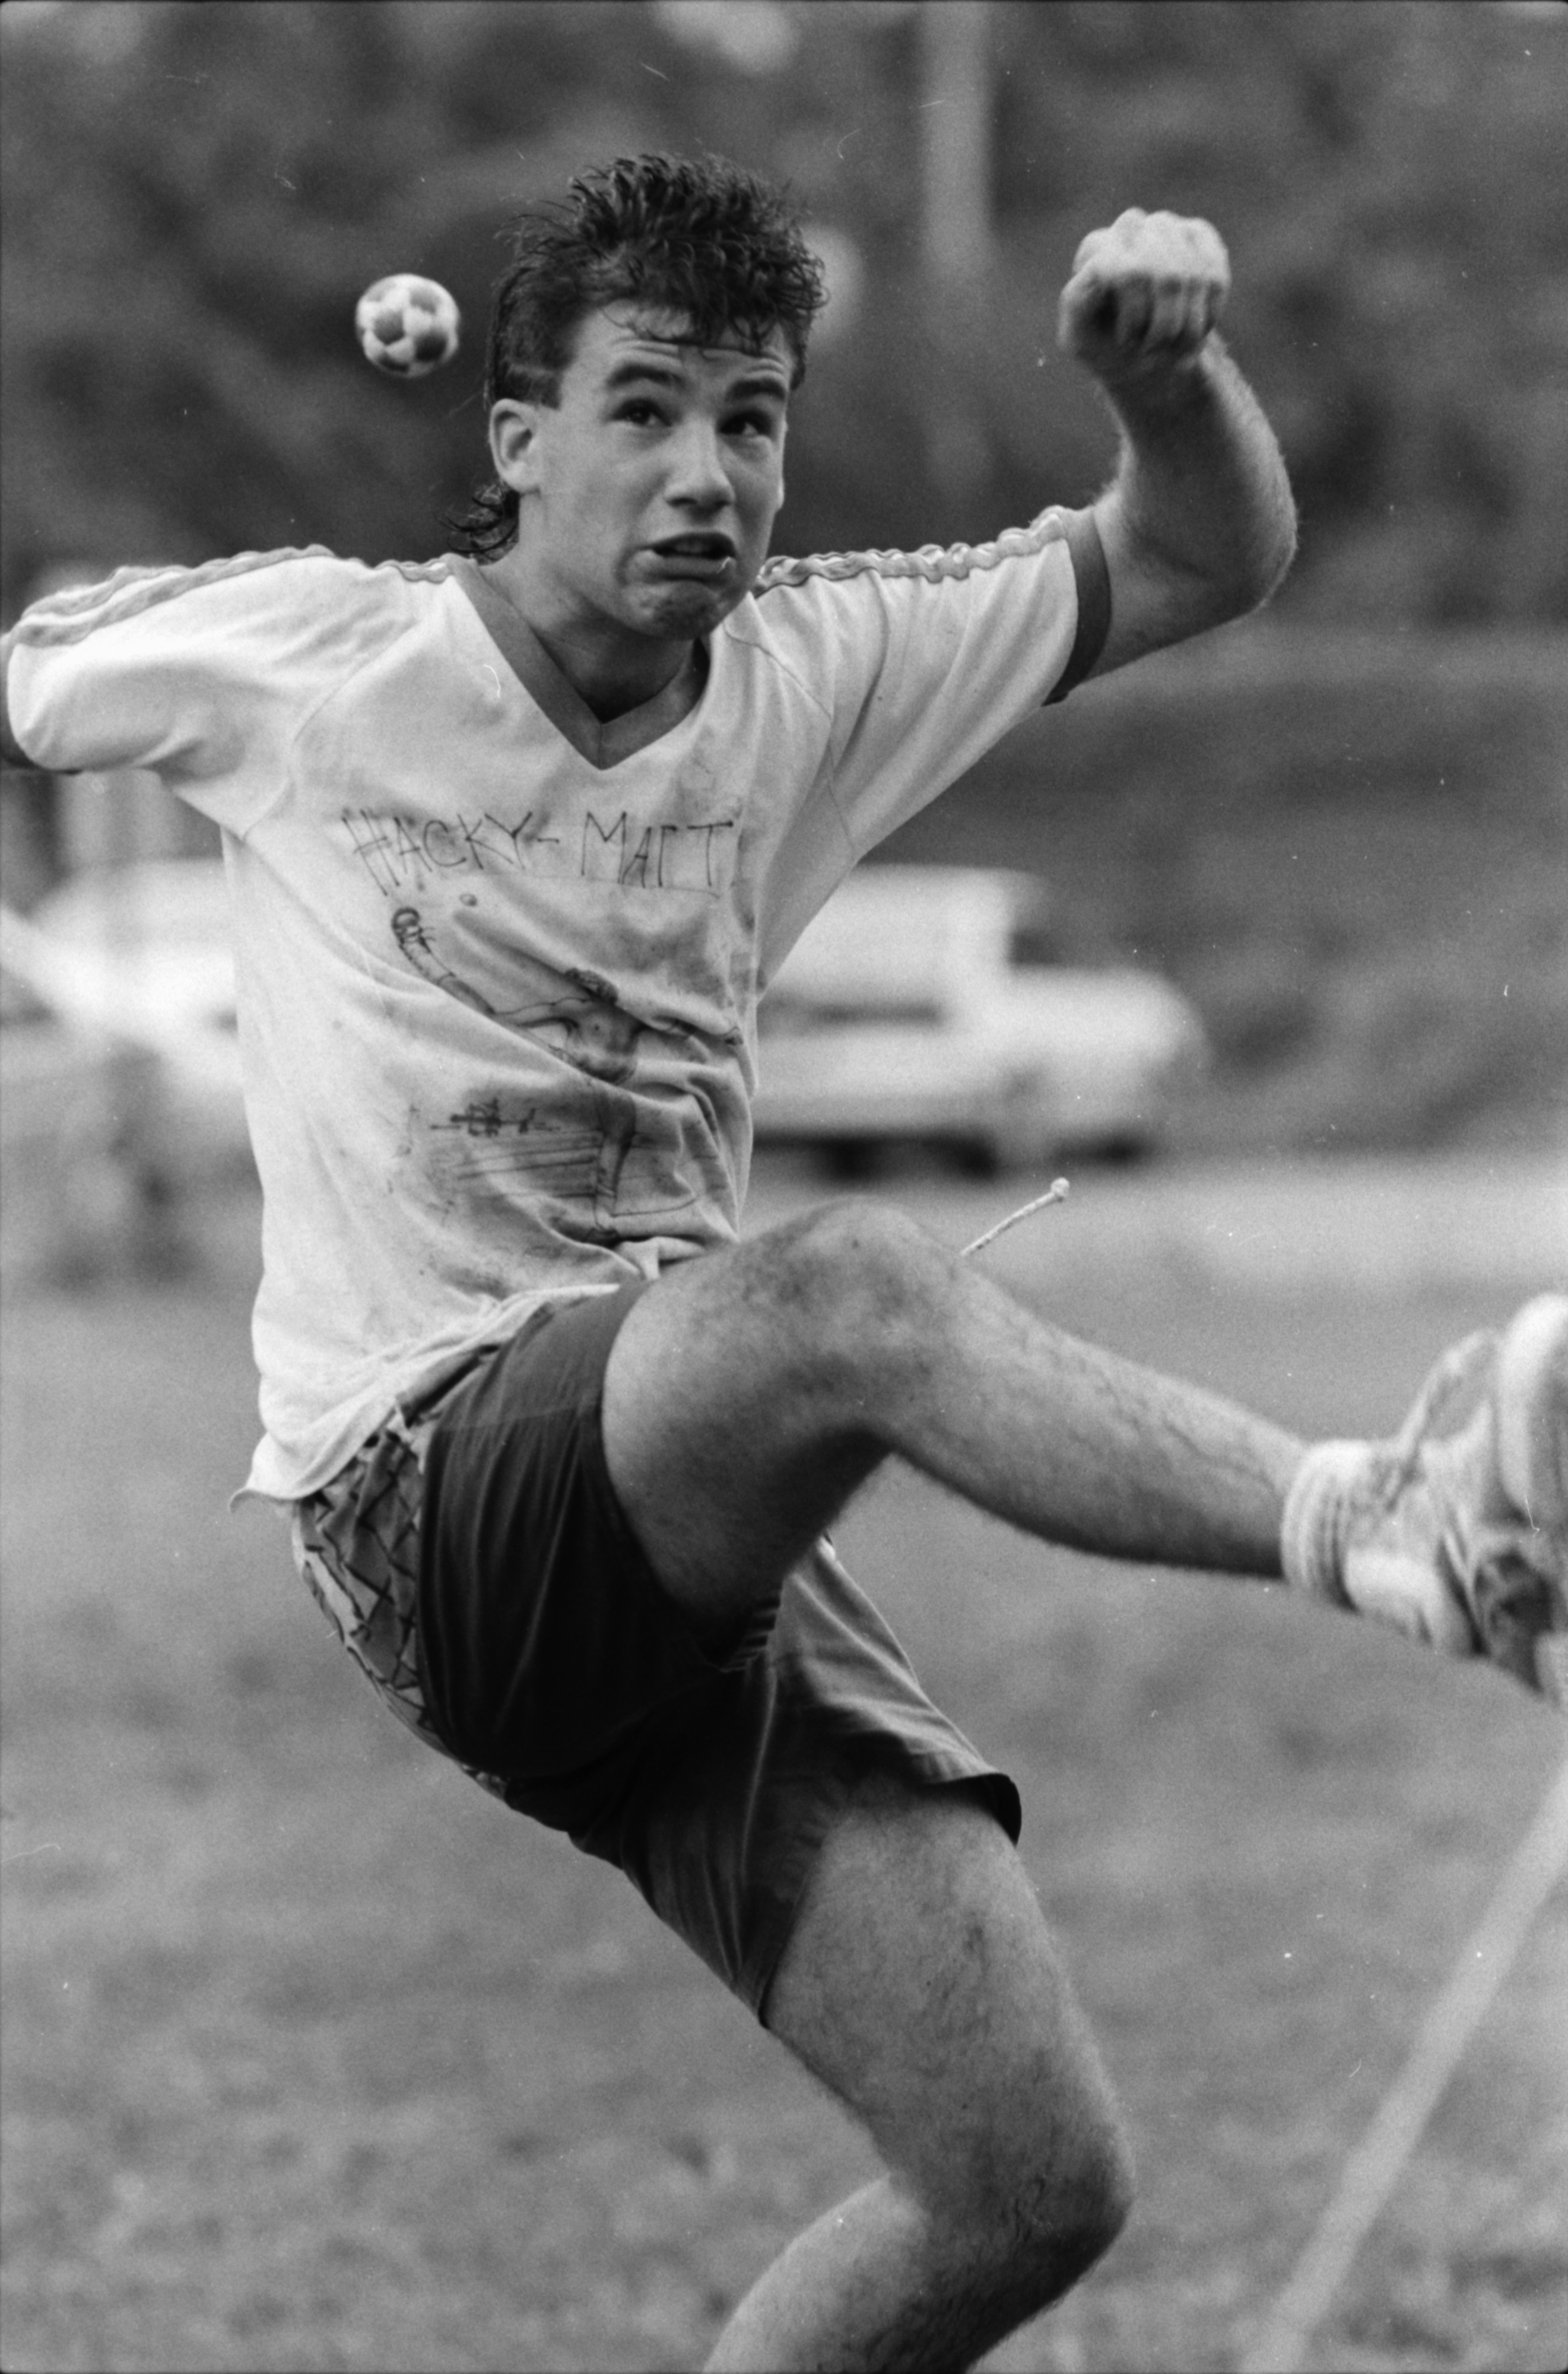 Matt Mattson in the Great Lakes Invitational Footbag Championships at Community High, June 1991 image